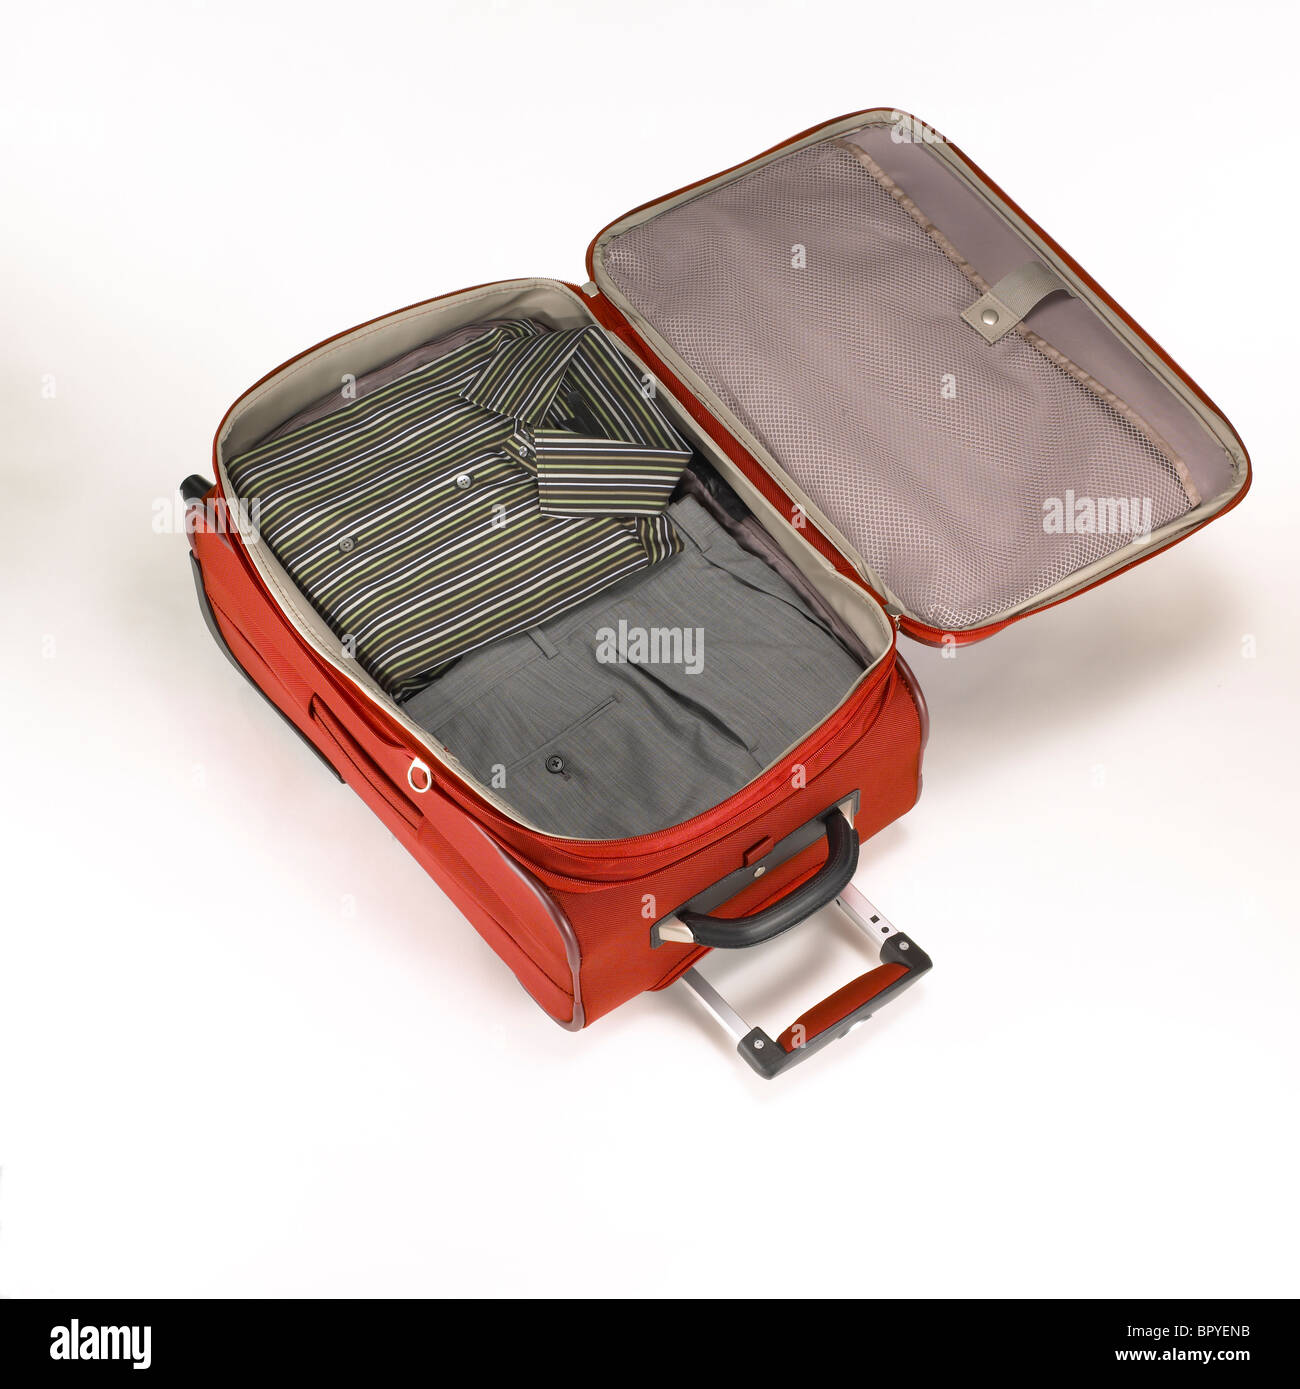 A red carry-on luggage with contents. - Stock Image